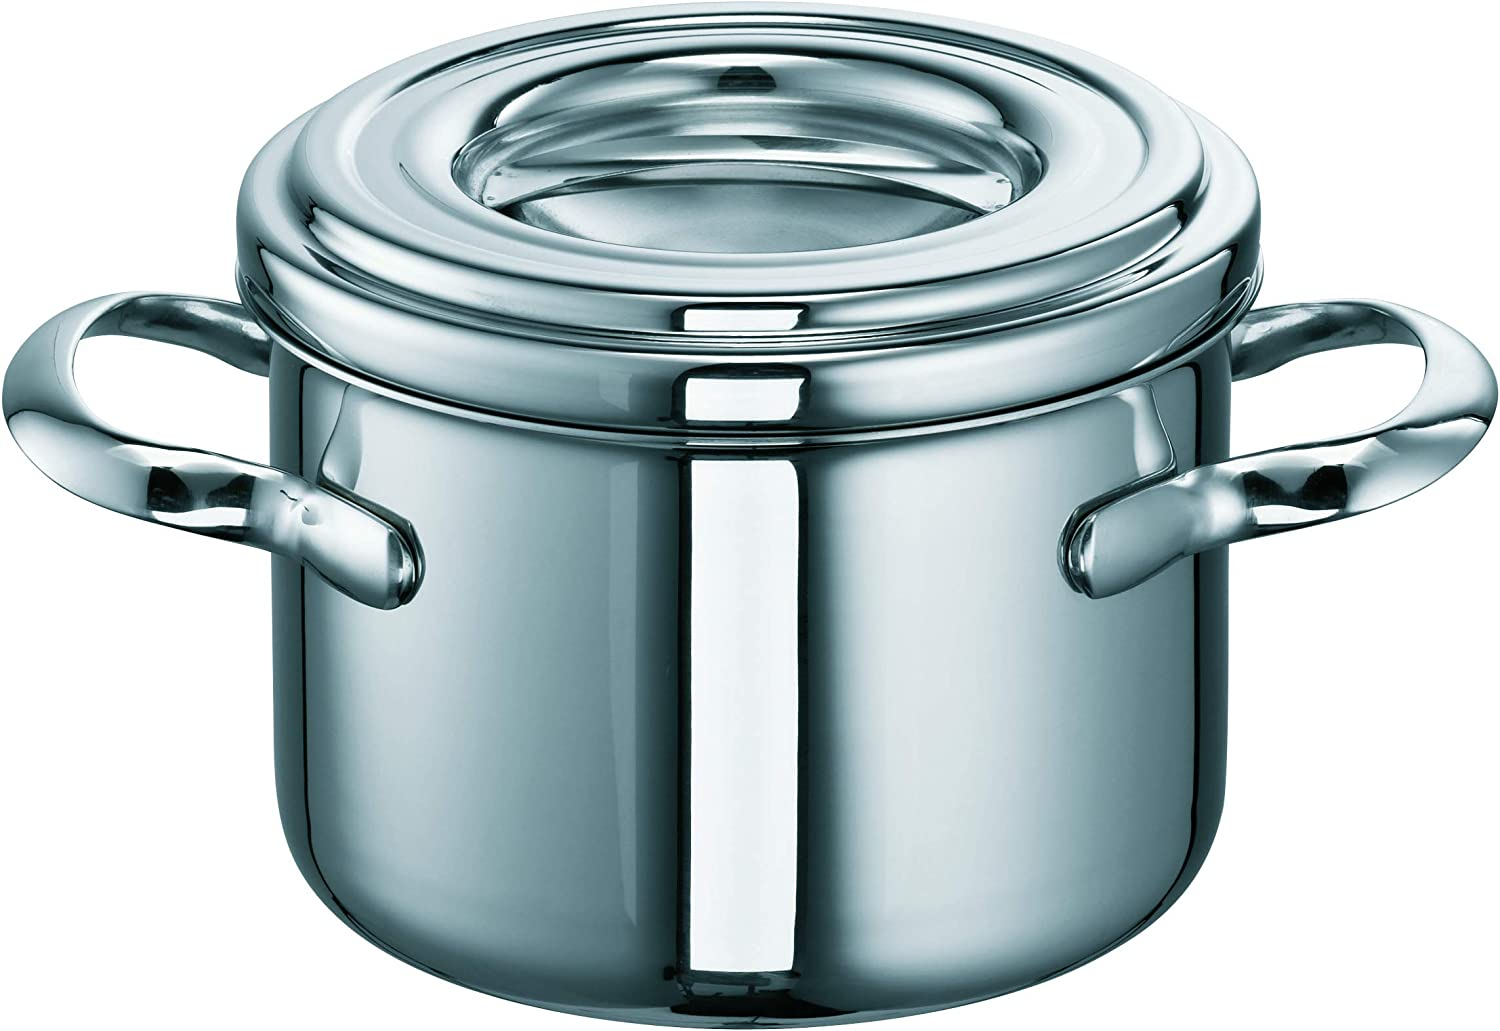 Pot type: High quality covered saucepan Max 67% OFF